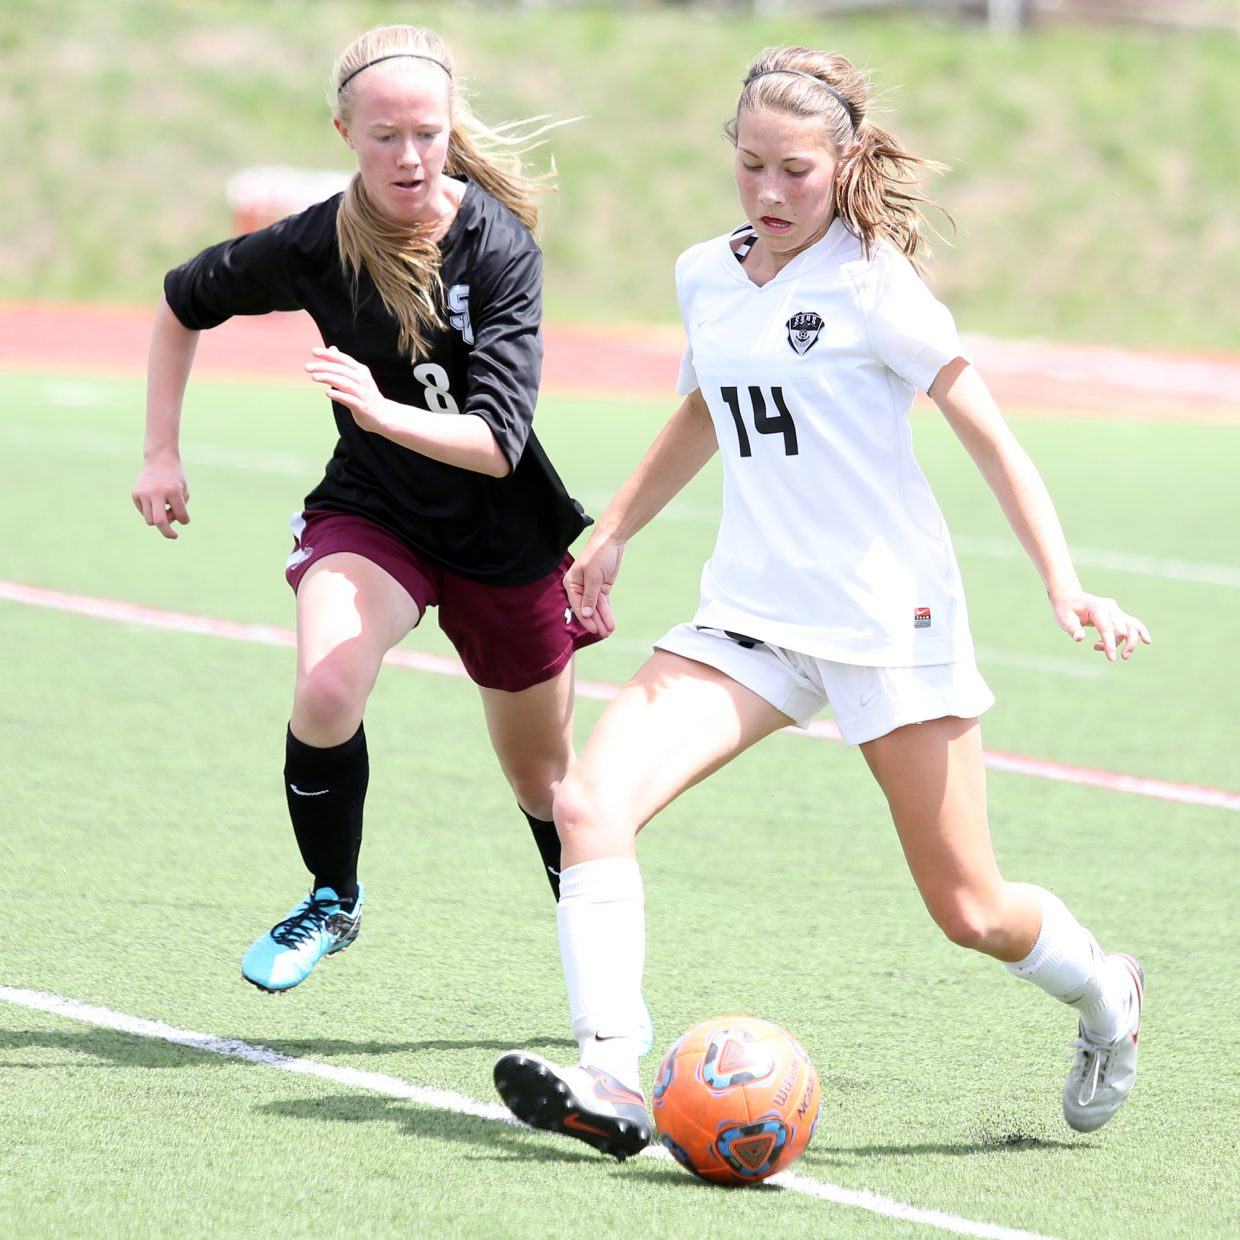 Steamboat freshman Megan Salyer, right, looks to move the ball upfield Saturday against Silver Creek at Gardner Field.